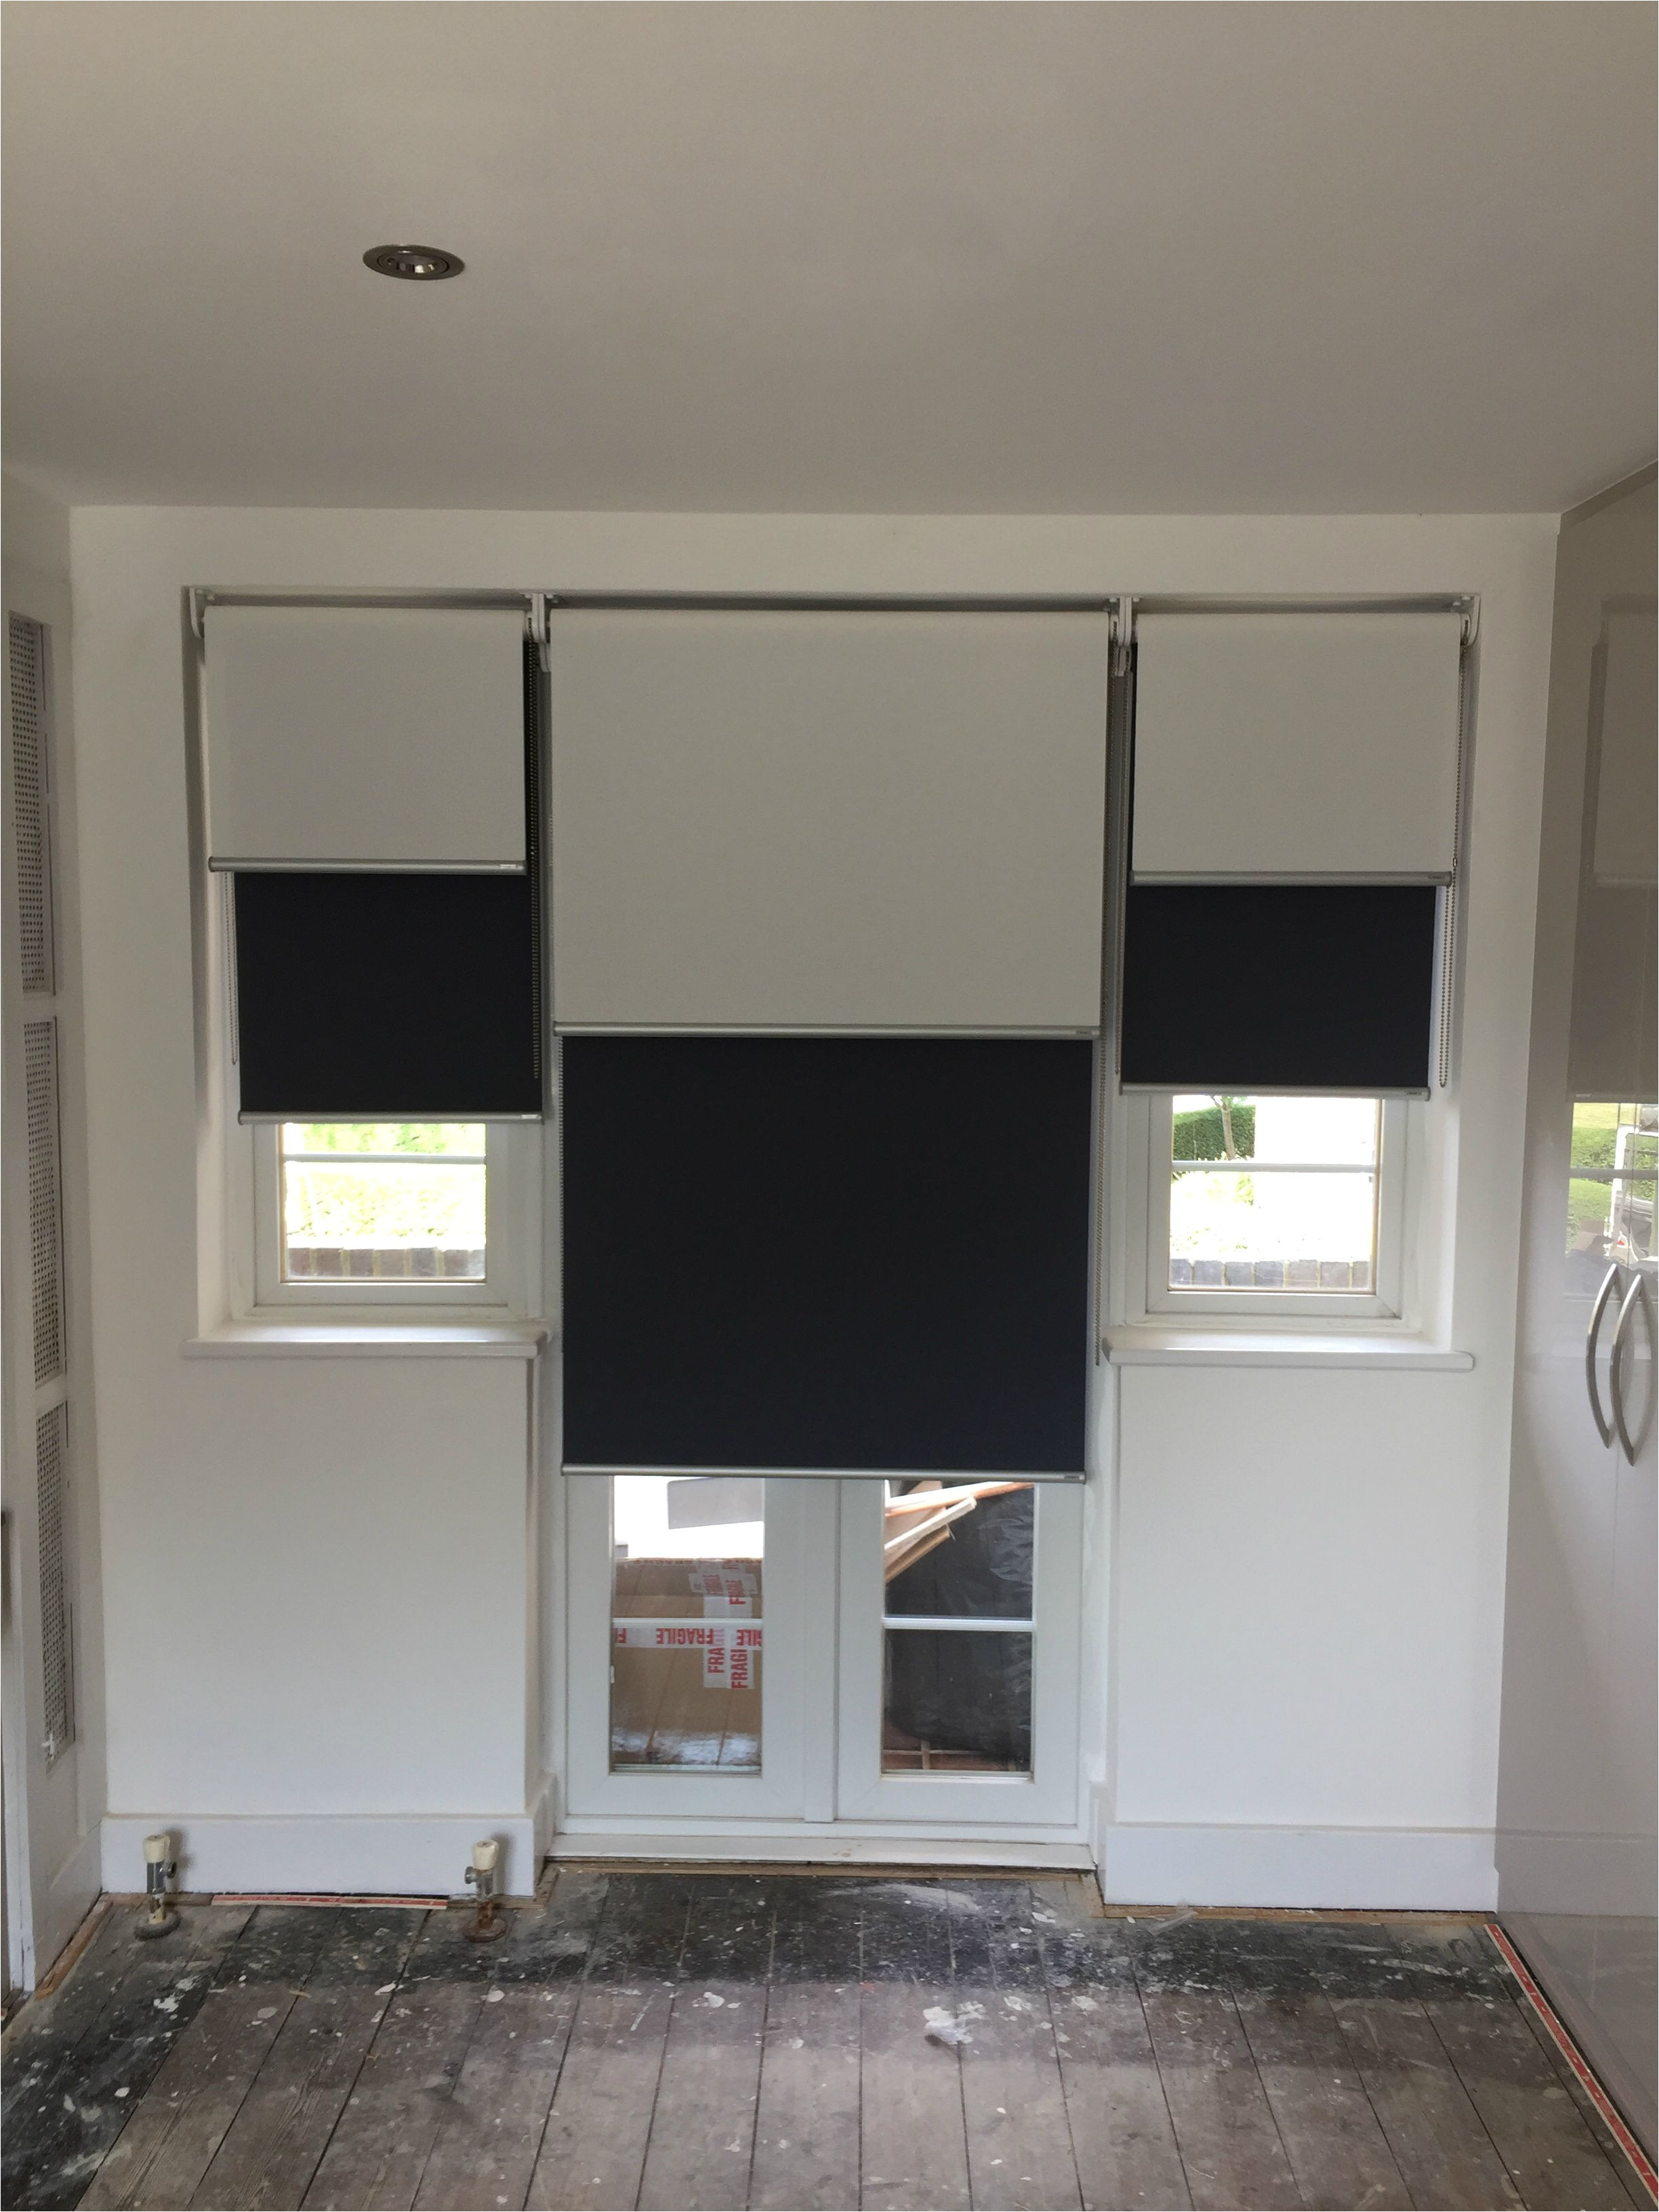 double dual roller blinds blackout and sunscreen roller blinds blinds for french doors made to measure modern blinds chiswick